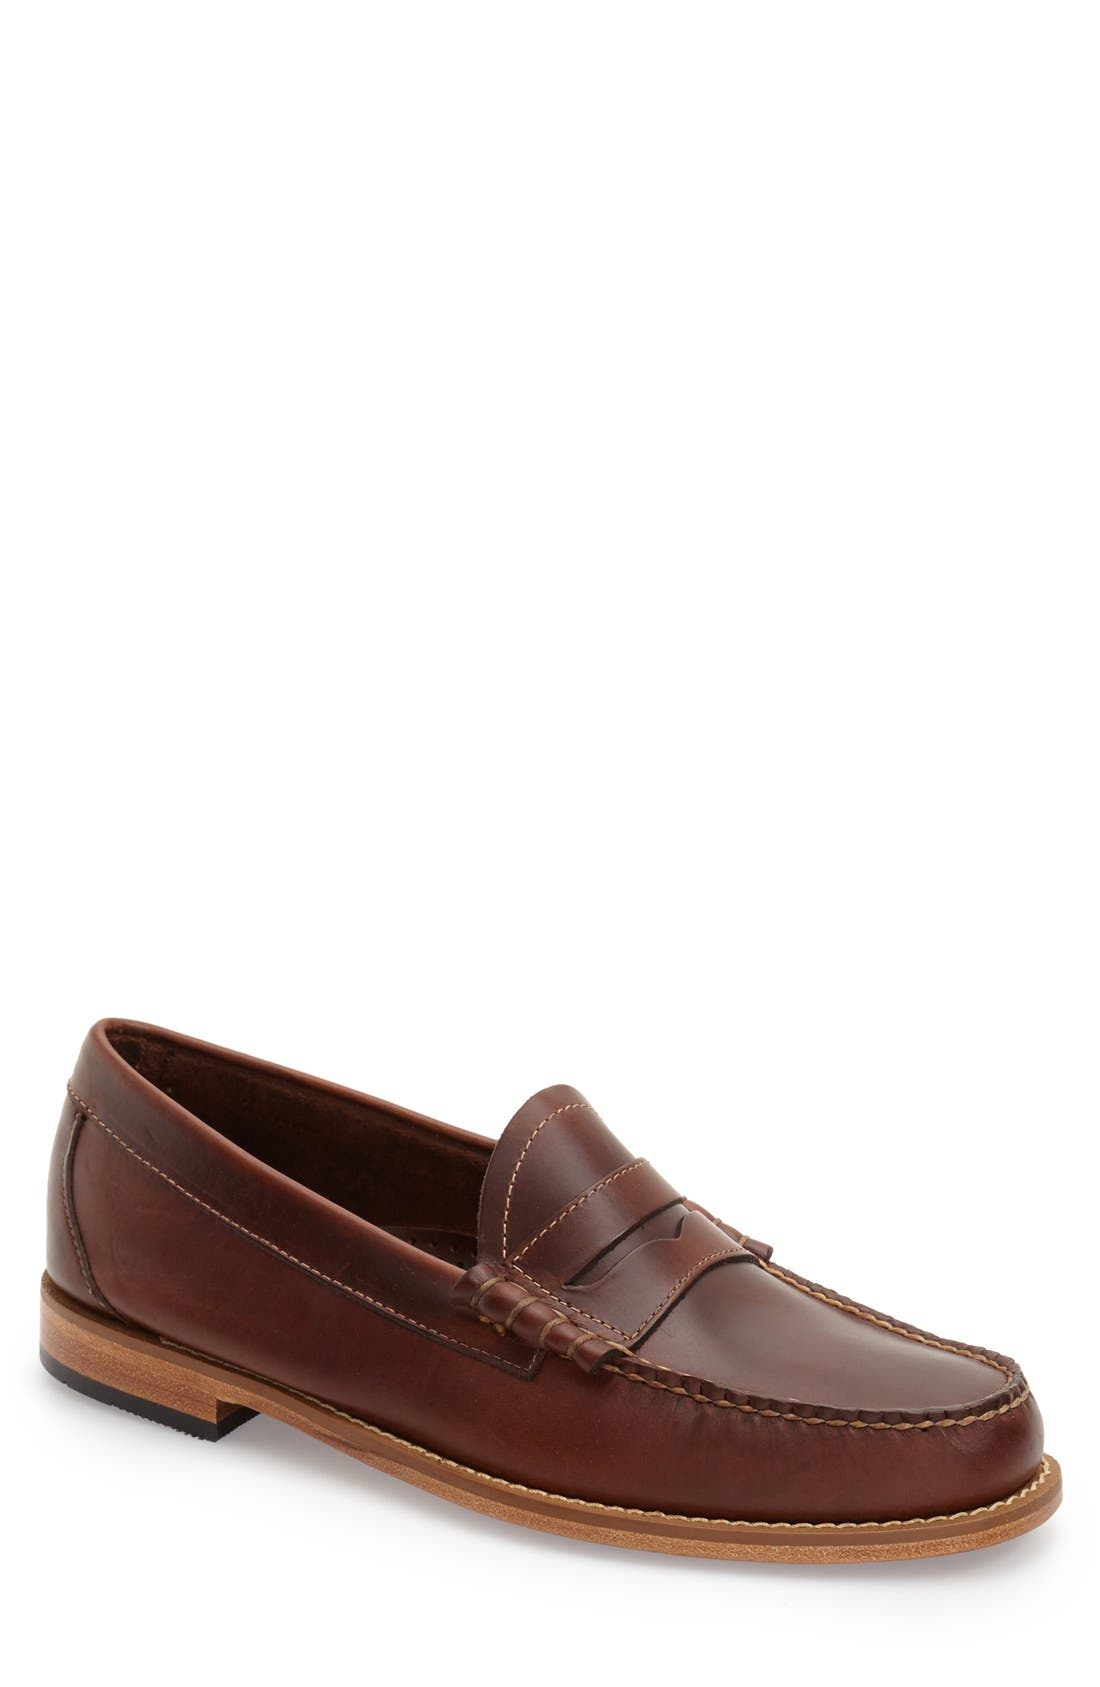 G.H. Bass & Co. 'Larson - Weejuns' Penny Loafer (Men)